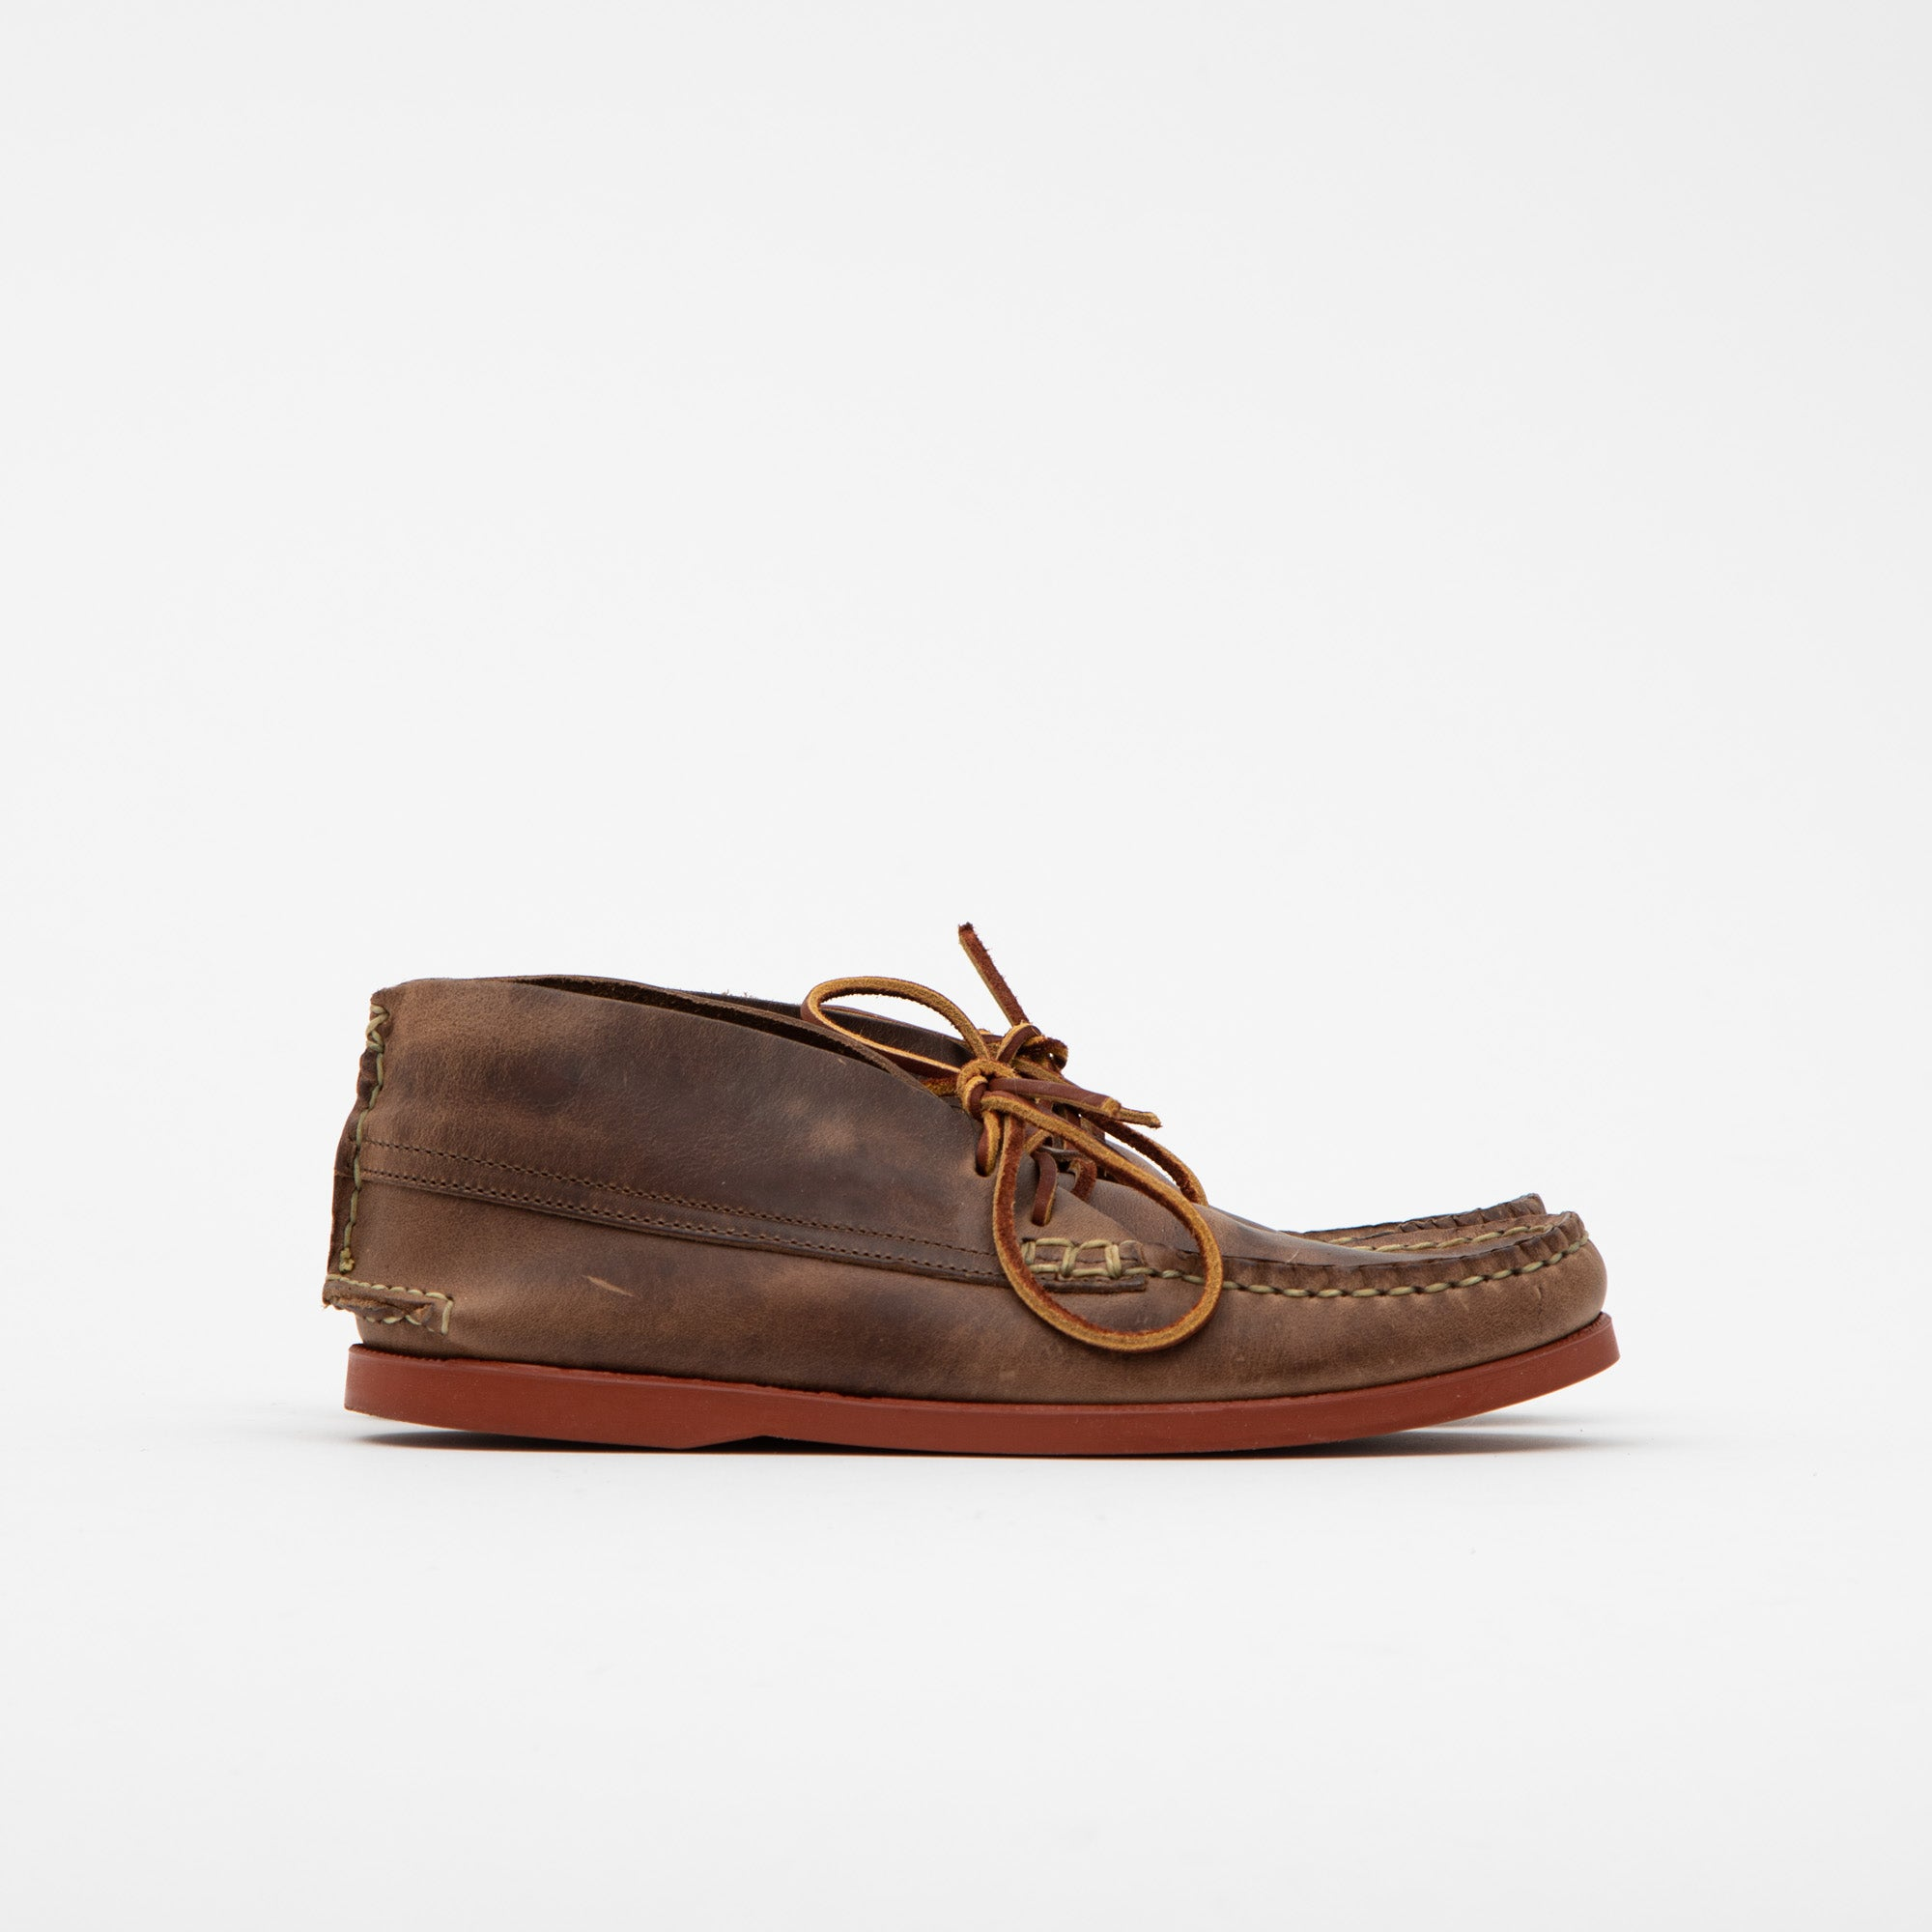 Yuketen Leather Chukka Shoes